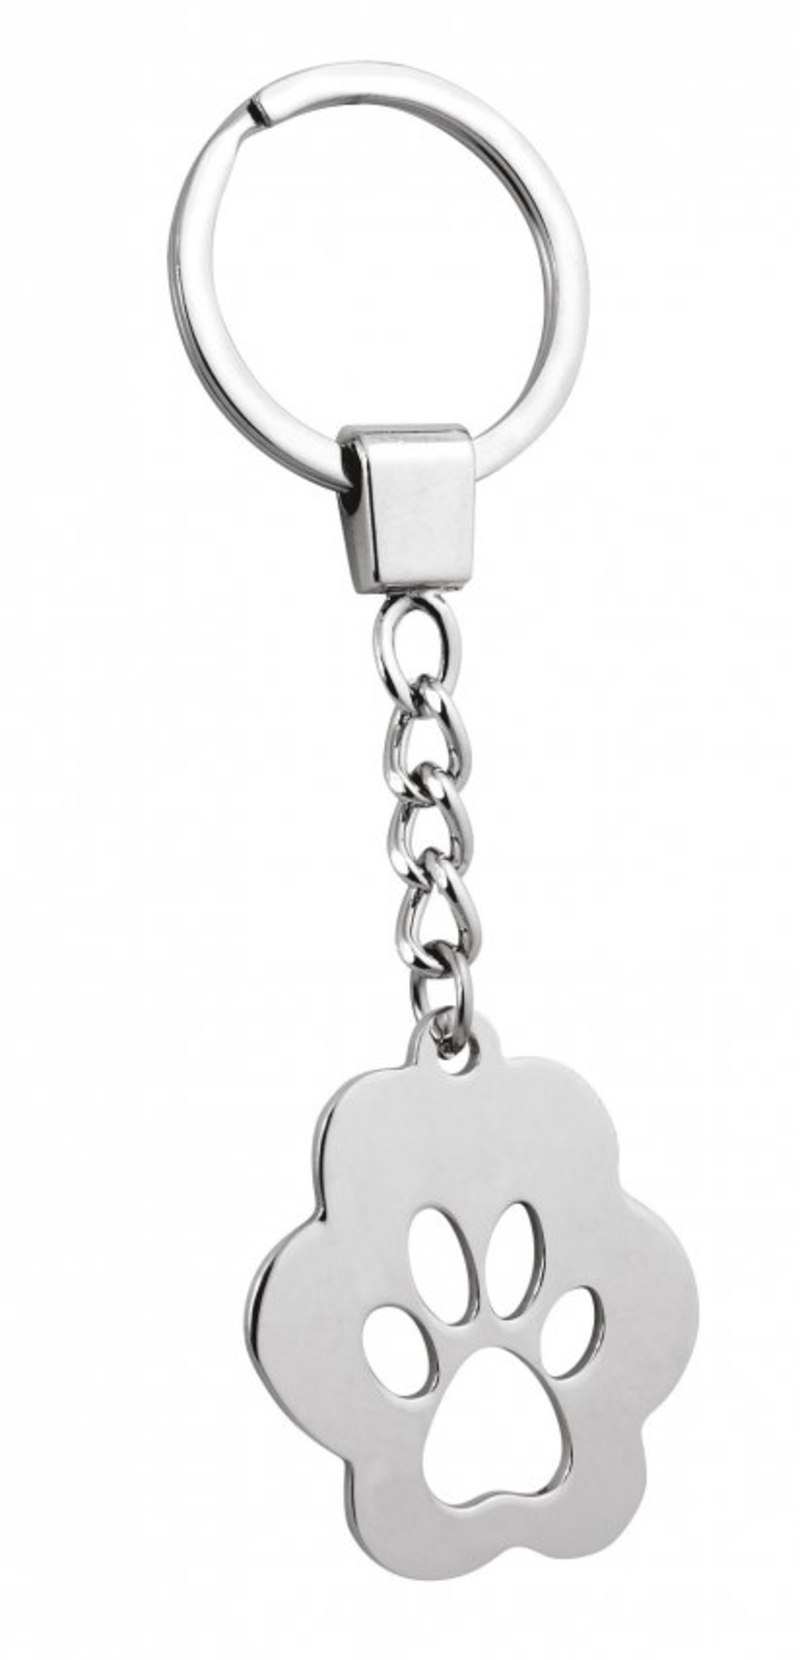 KEY CHAIN STEEL- PAW - NO BOX